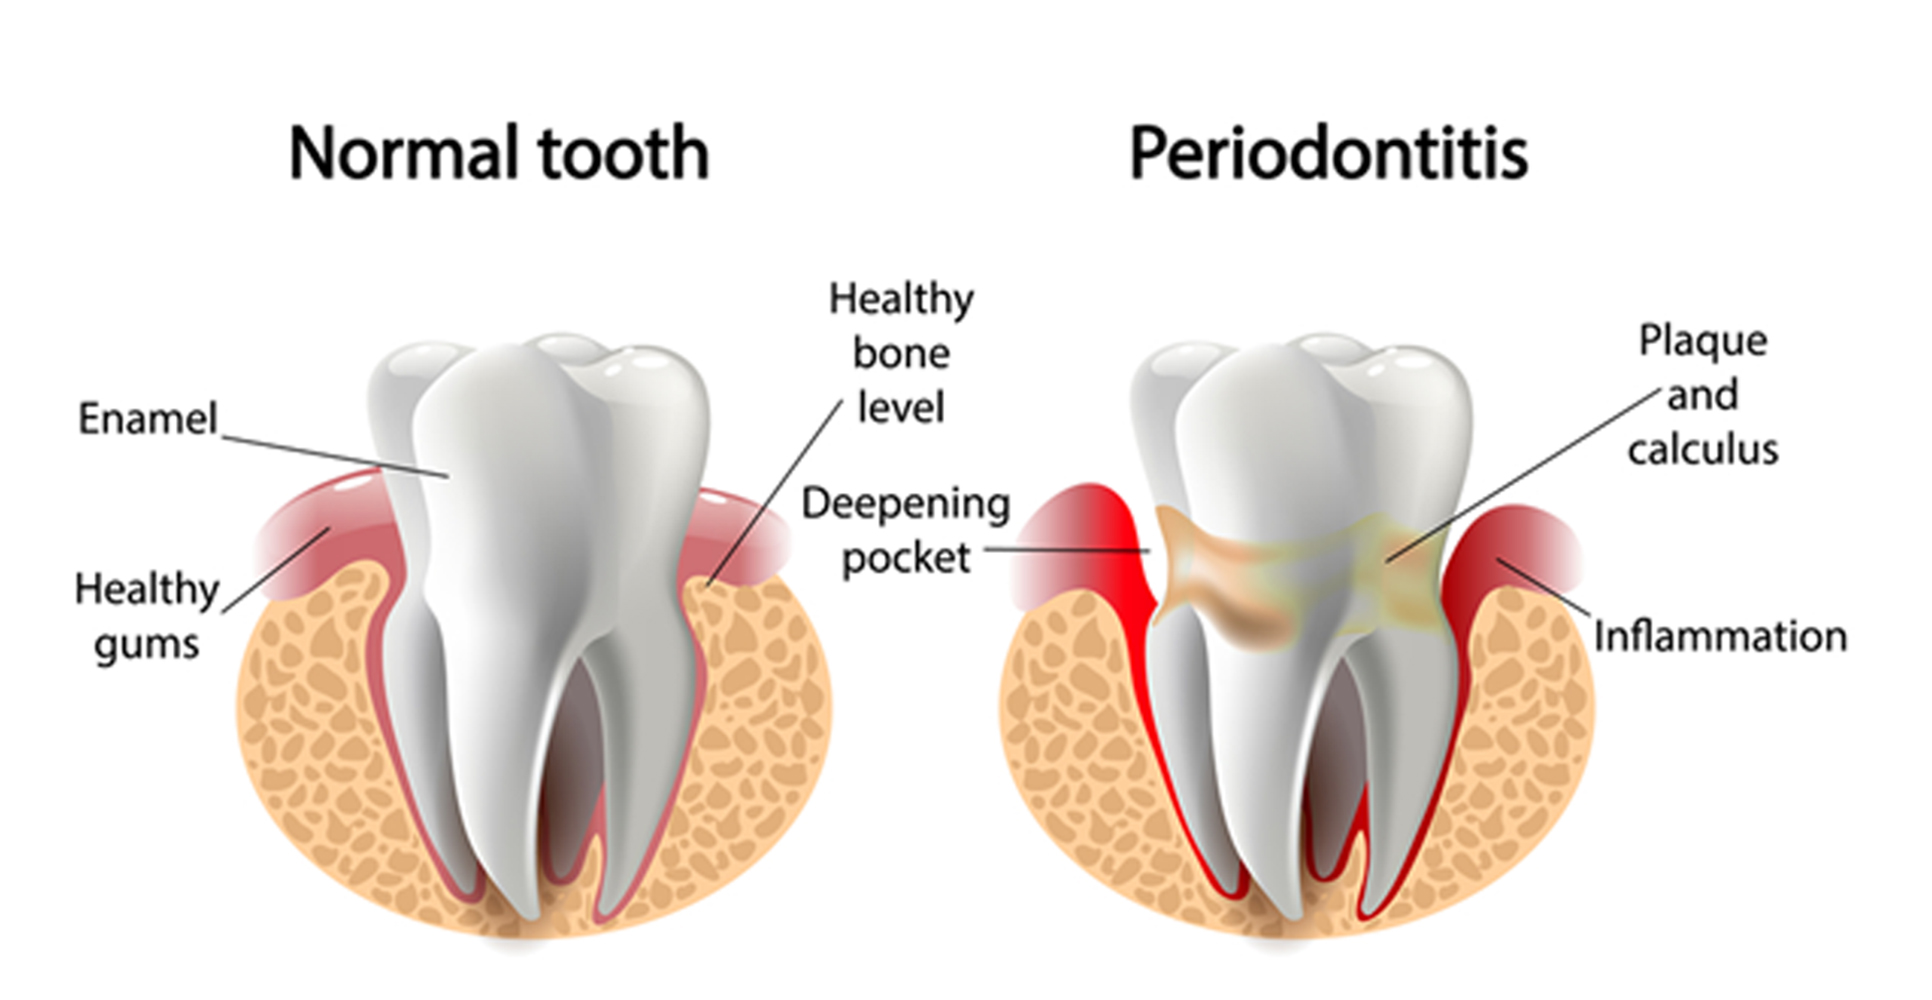 an illustration of a normal tooth and periodontitis